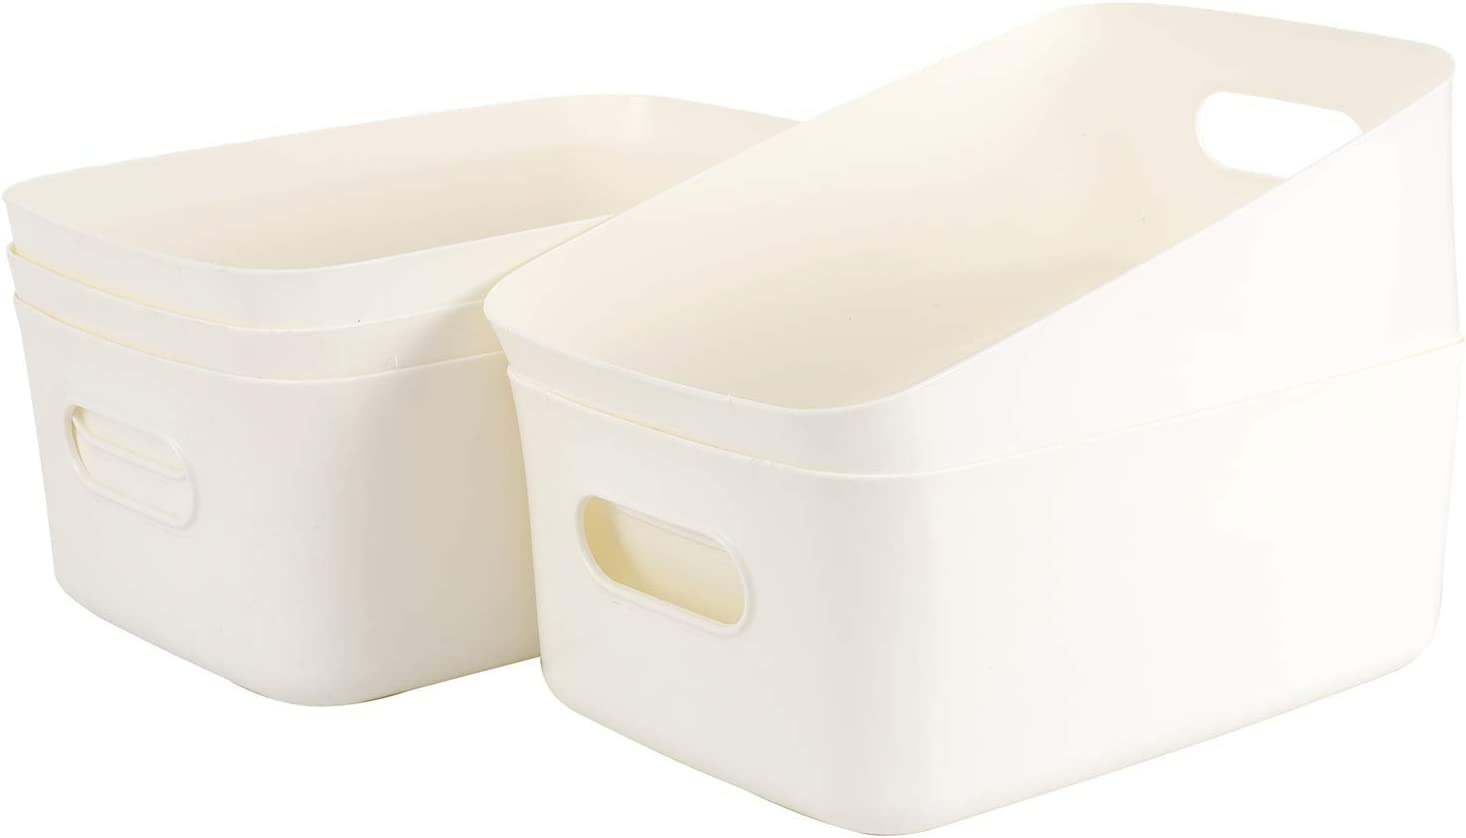 Origa Plastic Storage Baskets, Stackable Plastic Storage Box for Organizing Child's Toys, Desk Cabinet, Office, Bathroom, Bedroom Supplies-12.2inch x 7.87inch x 6.50inch (White,5-Pack)